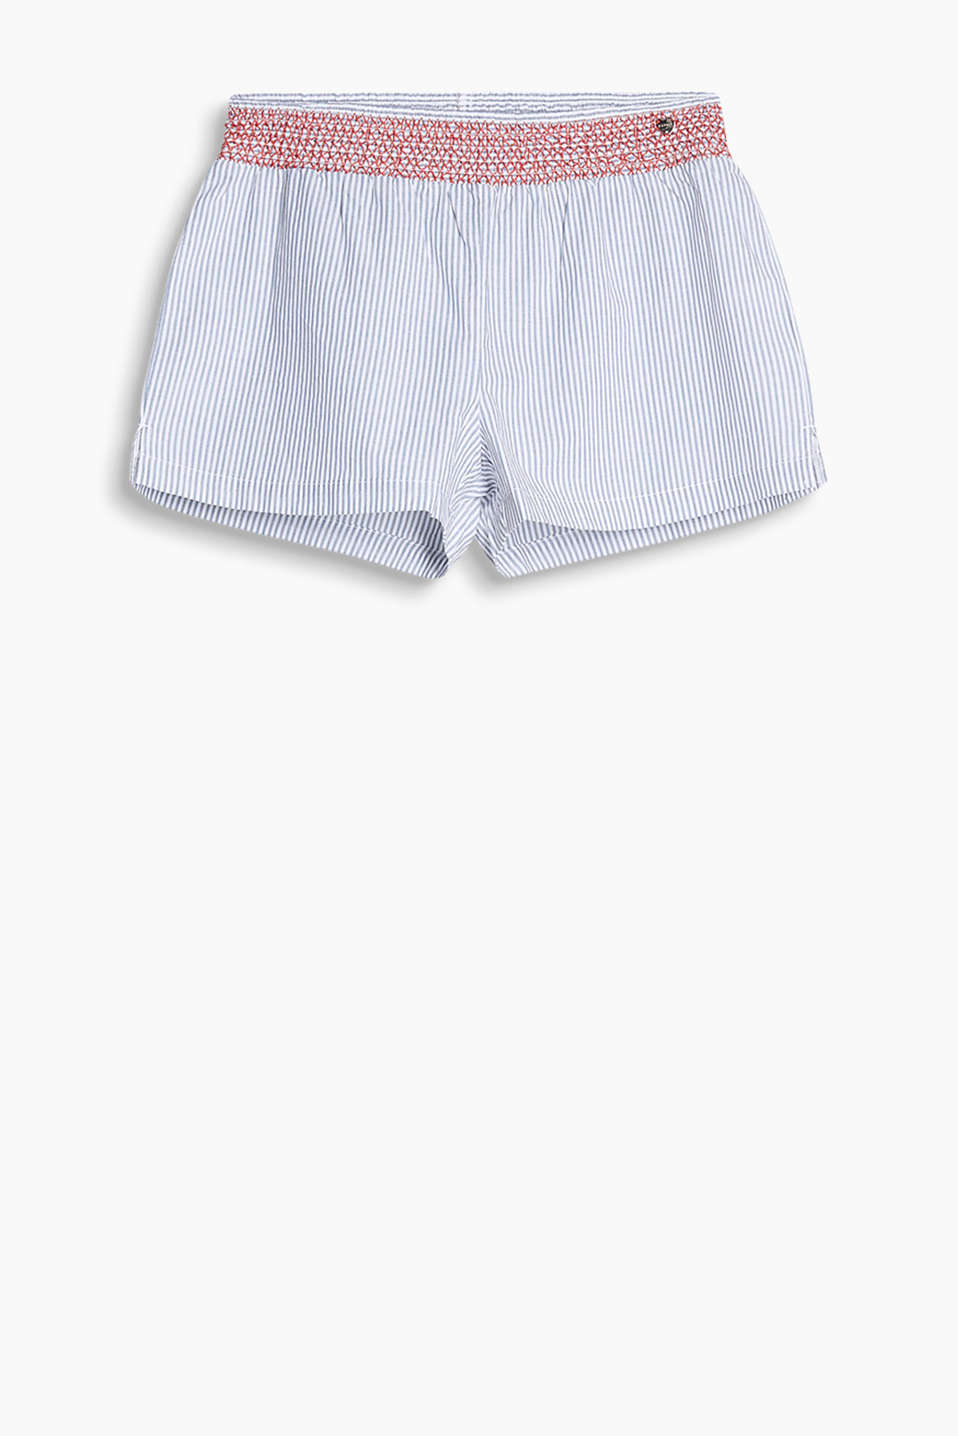 Shorts decorated with contrasting stitching and a subtle stripe pattern